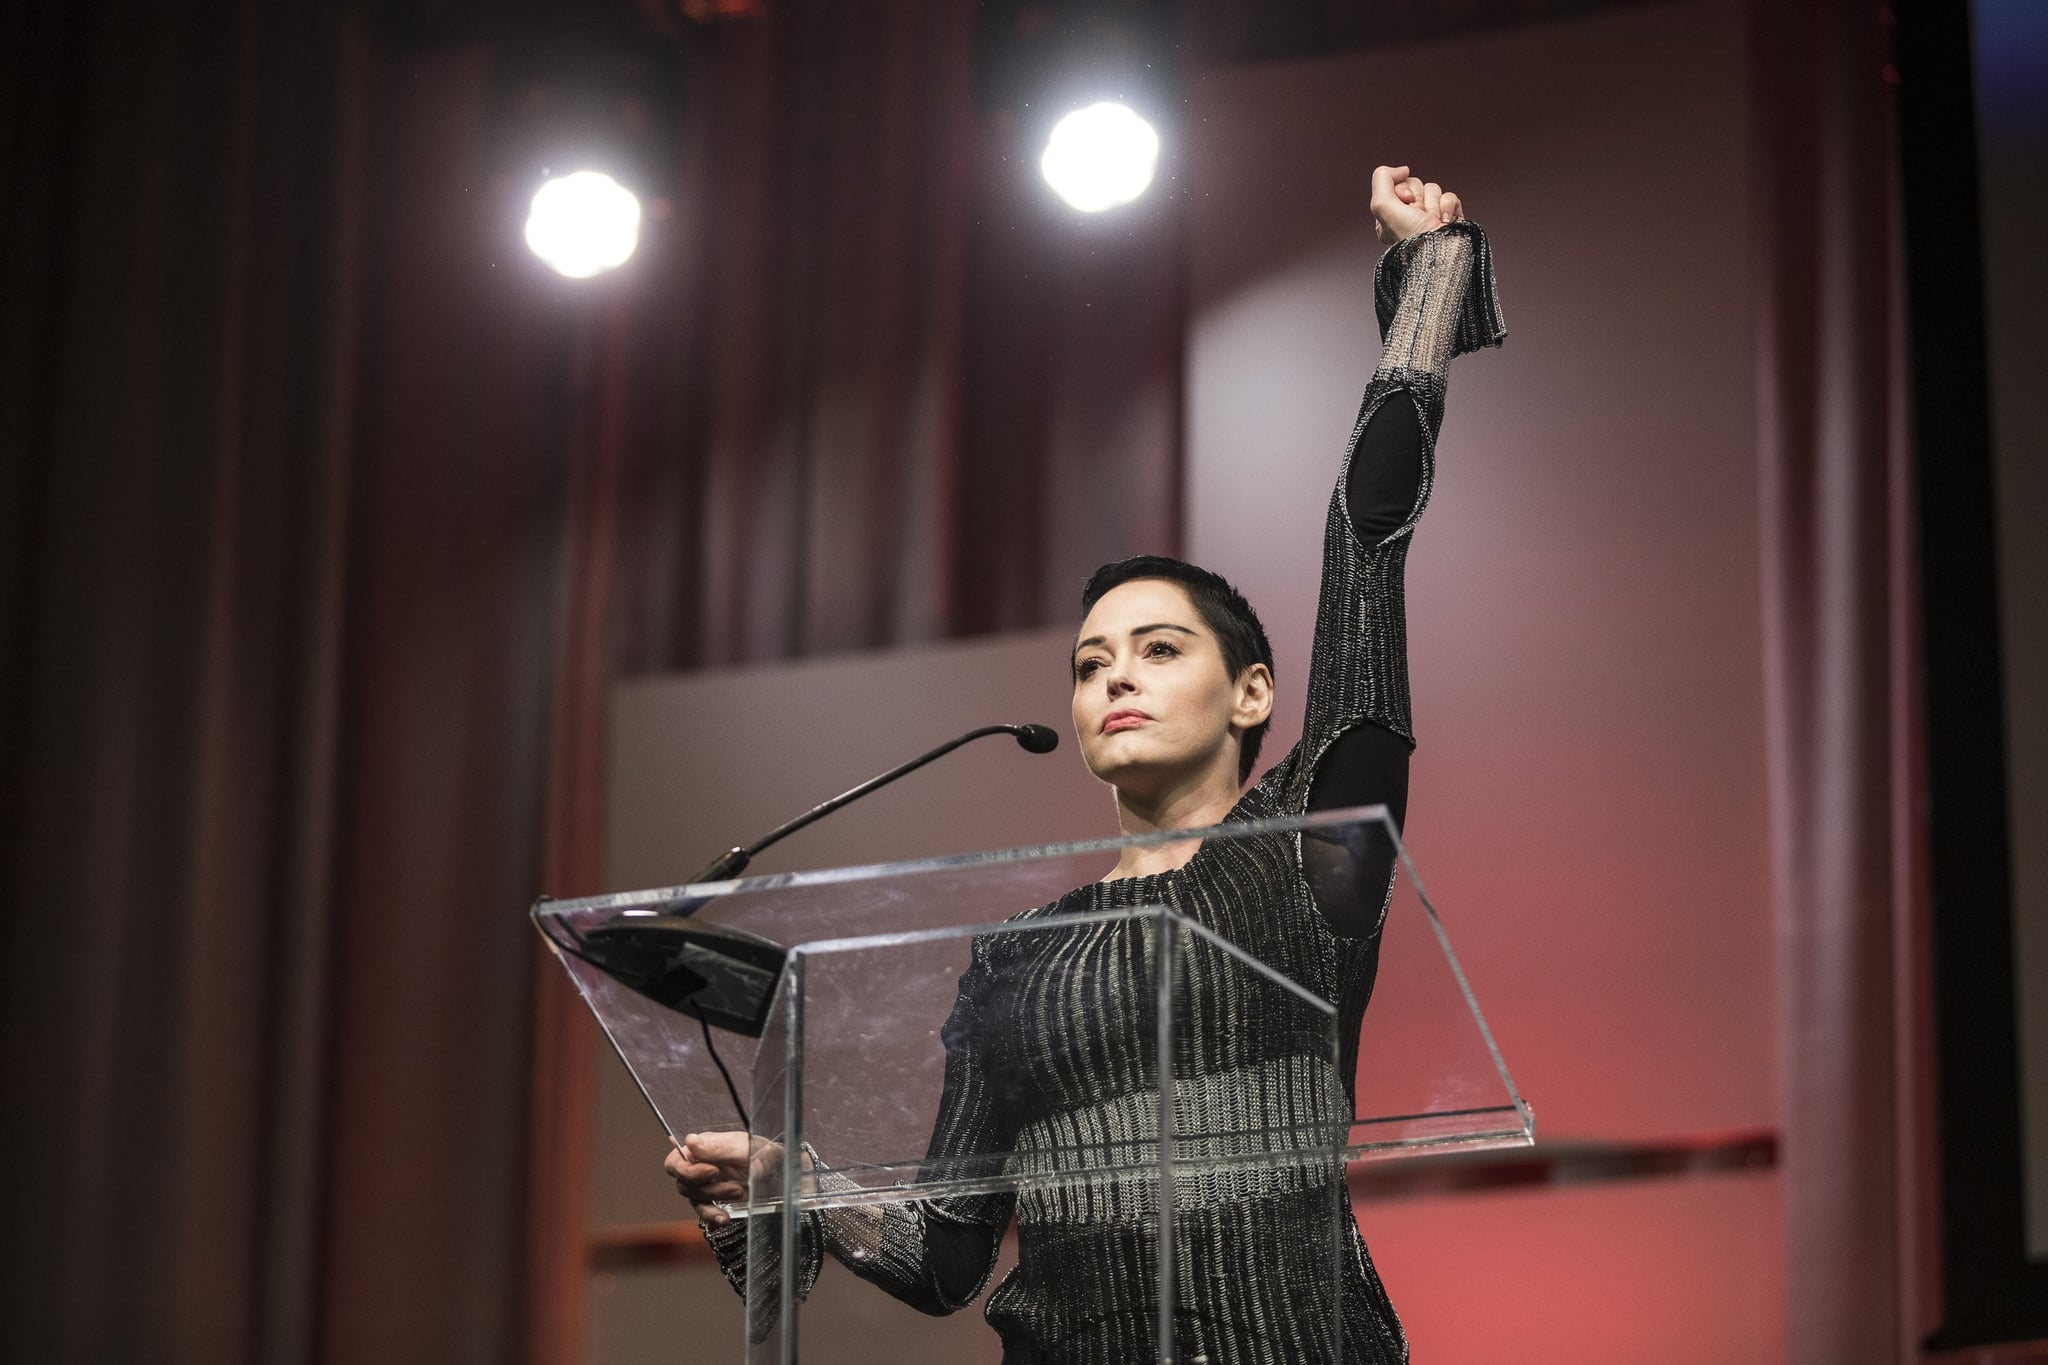 October 27, 2017 - Michigan, U.S. - Rose McGowan raises her fist as she speaks during The Women's Convention at Cobo Center in downtown Detroit, Friday, October 27, 2017. (Credit Image:  Detroit Free Press via ZUMA Wire)